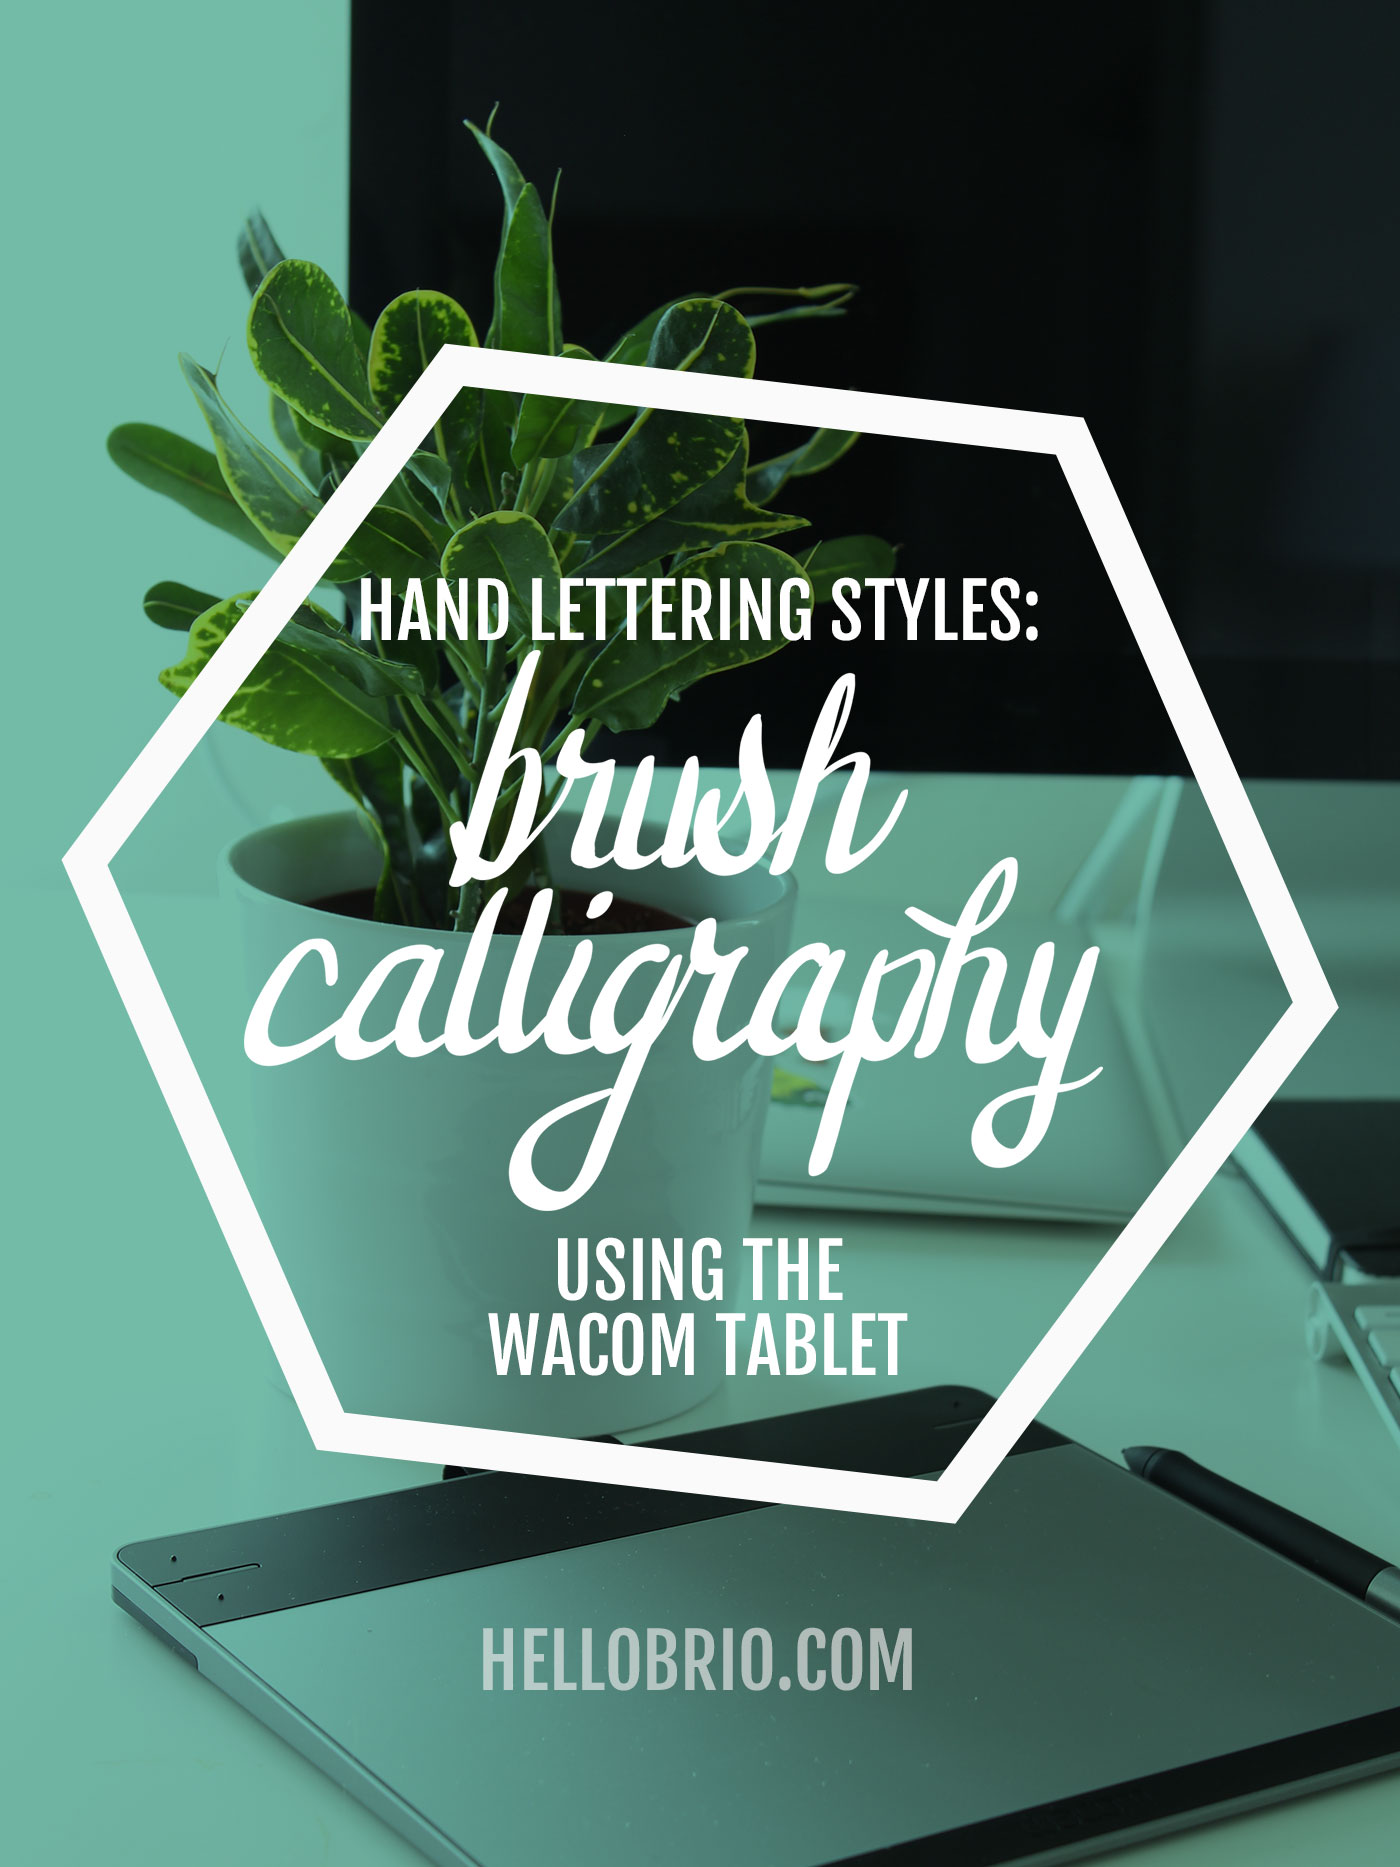 Illustrator and hand lettering tutorial: brush calligraphy